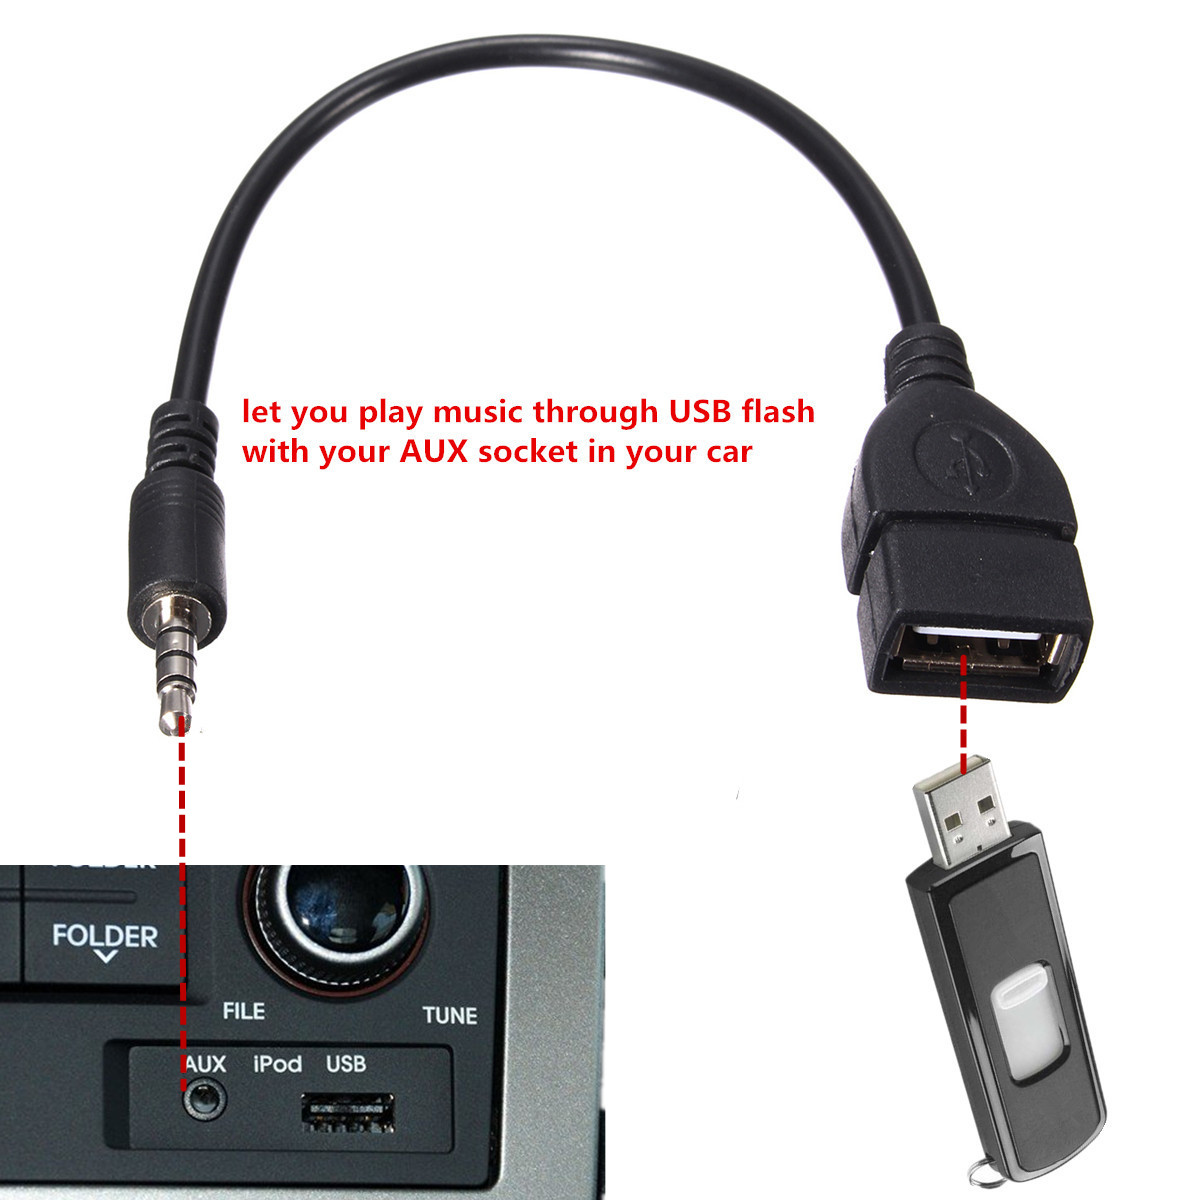 M.way Sync 3.5mm Male AUX Audio Plug Jack to USB 2.0 Type A Female OTG Converter Adapter Cable Cord